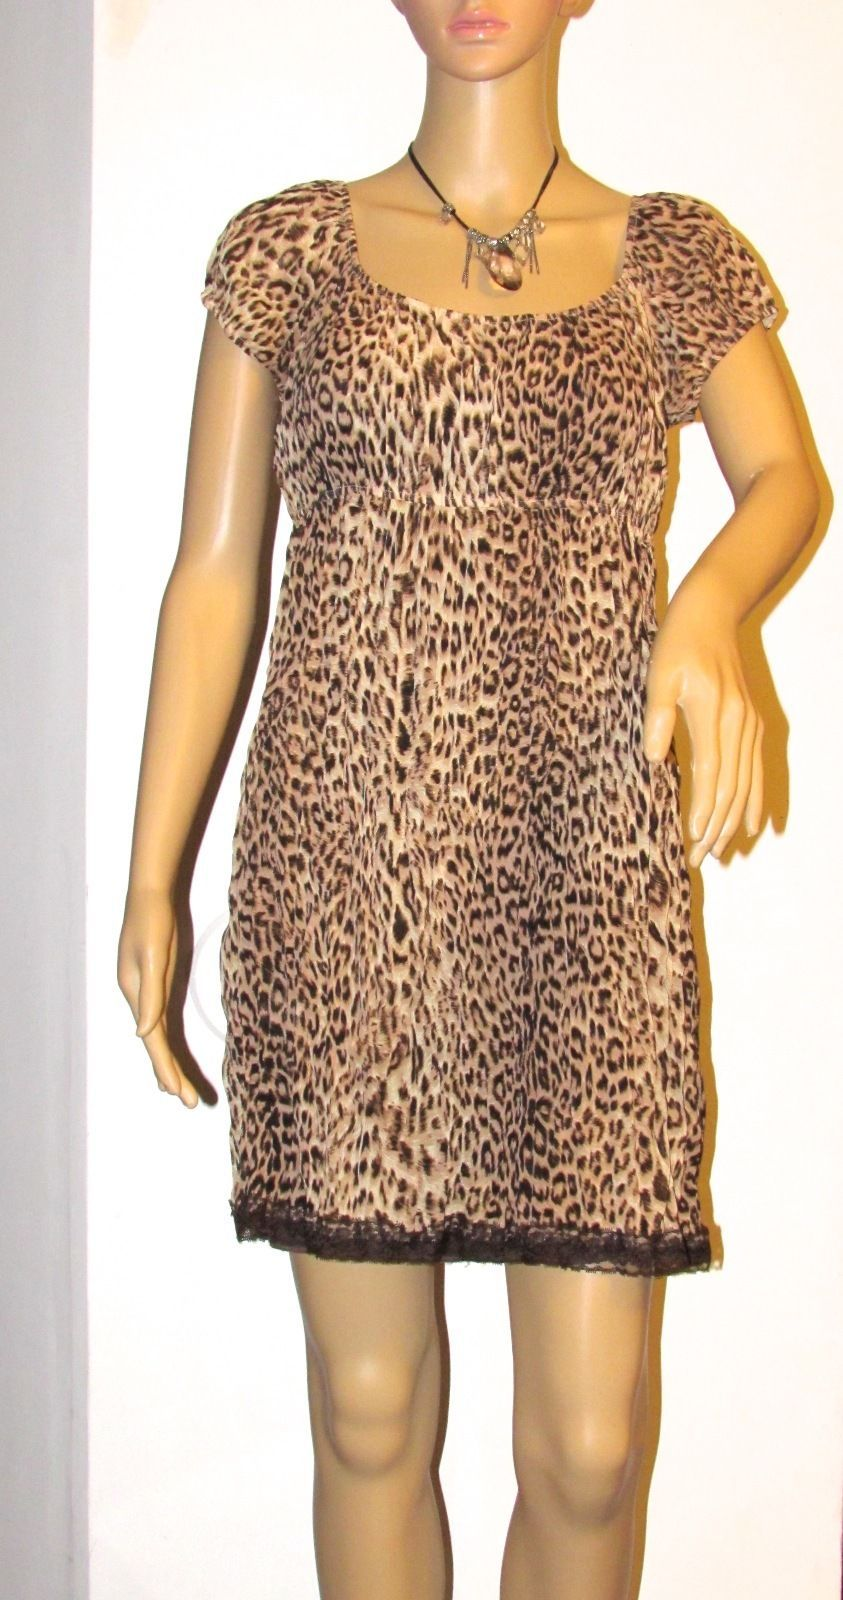 Lots of Love by Speechless Leopard Print Multi-Color Lined Dress S: M-Juniors